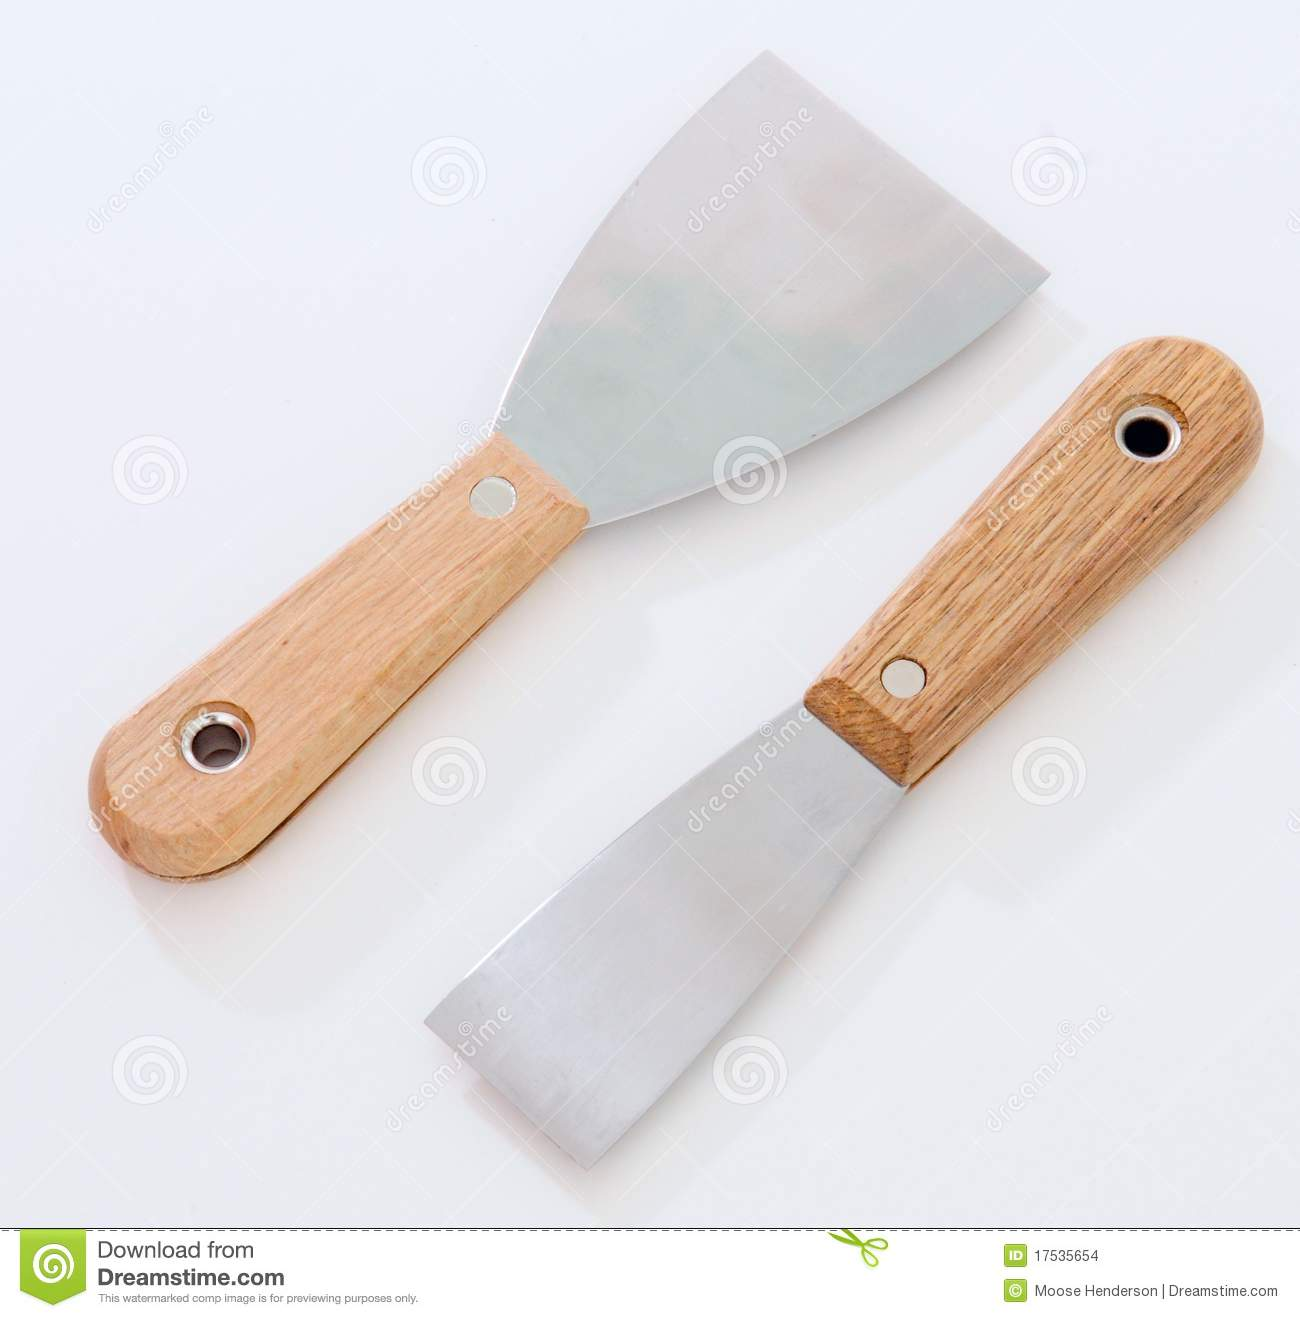 More similar stock images of ` Paint Scrapper and Putty Knife `